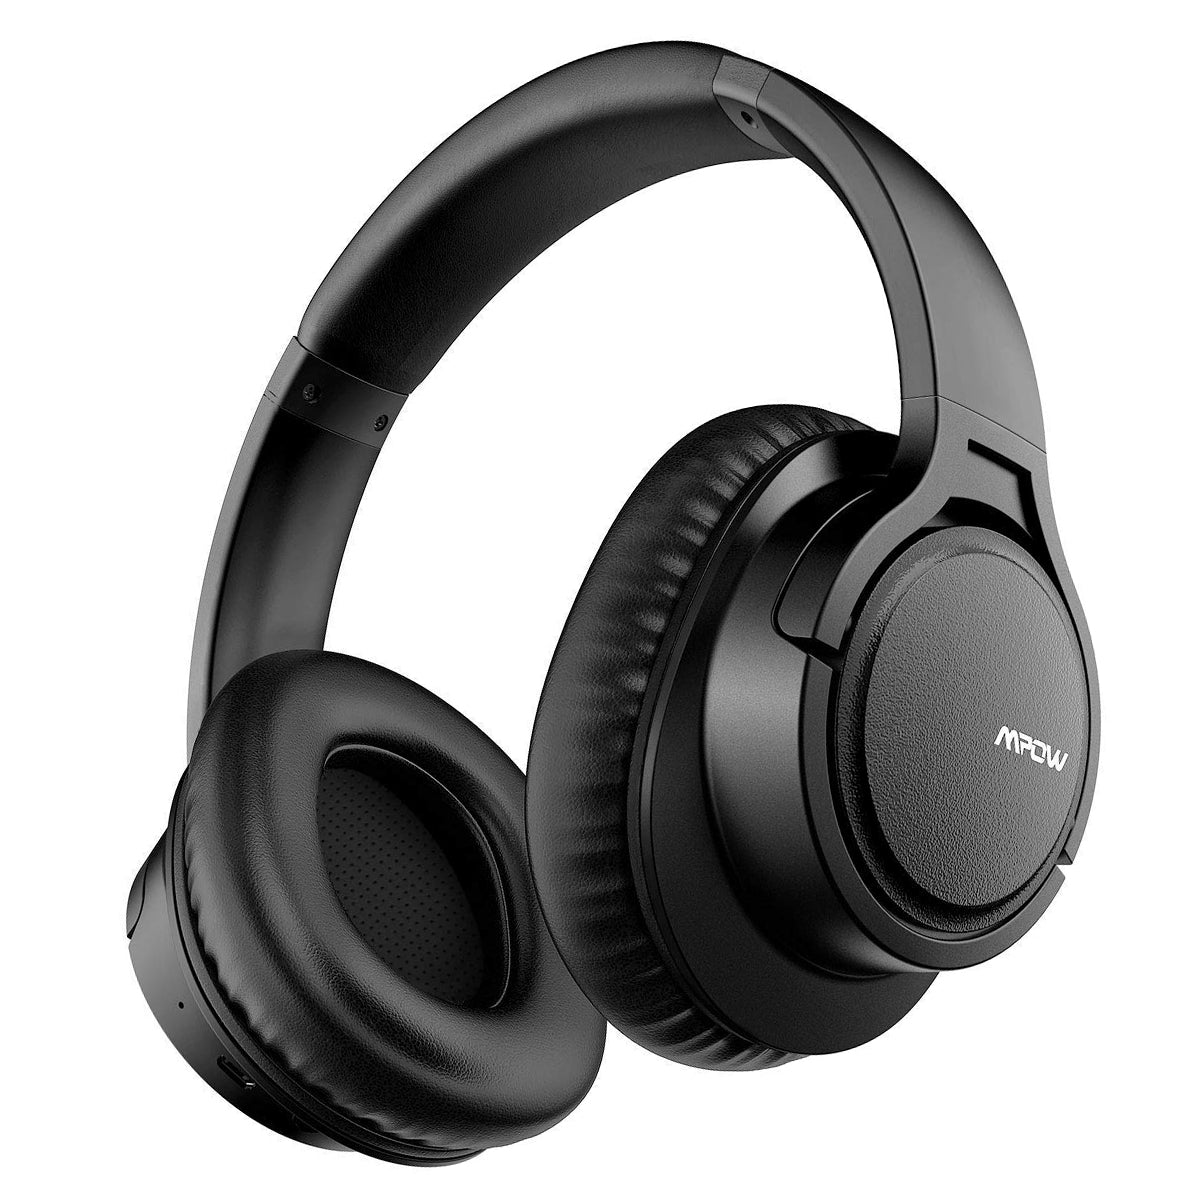 Holo H7 Best Budget Headphones